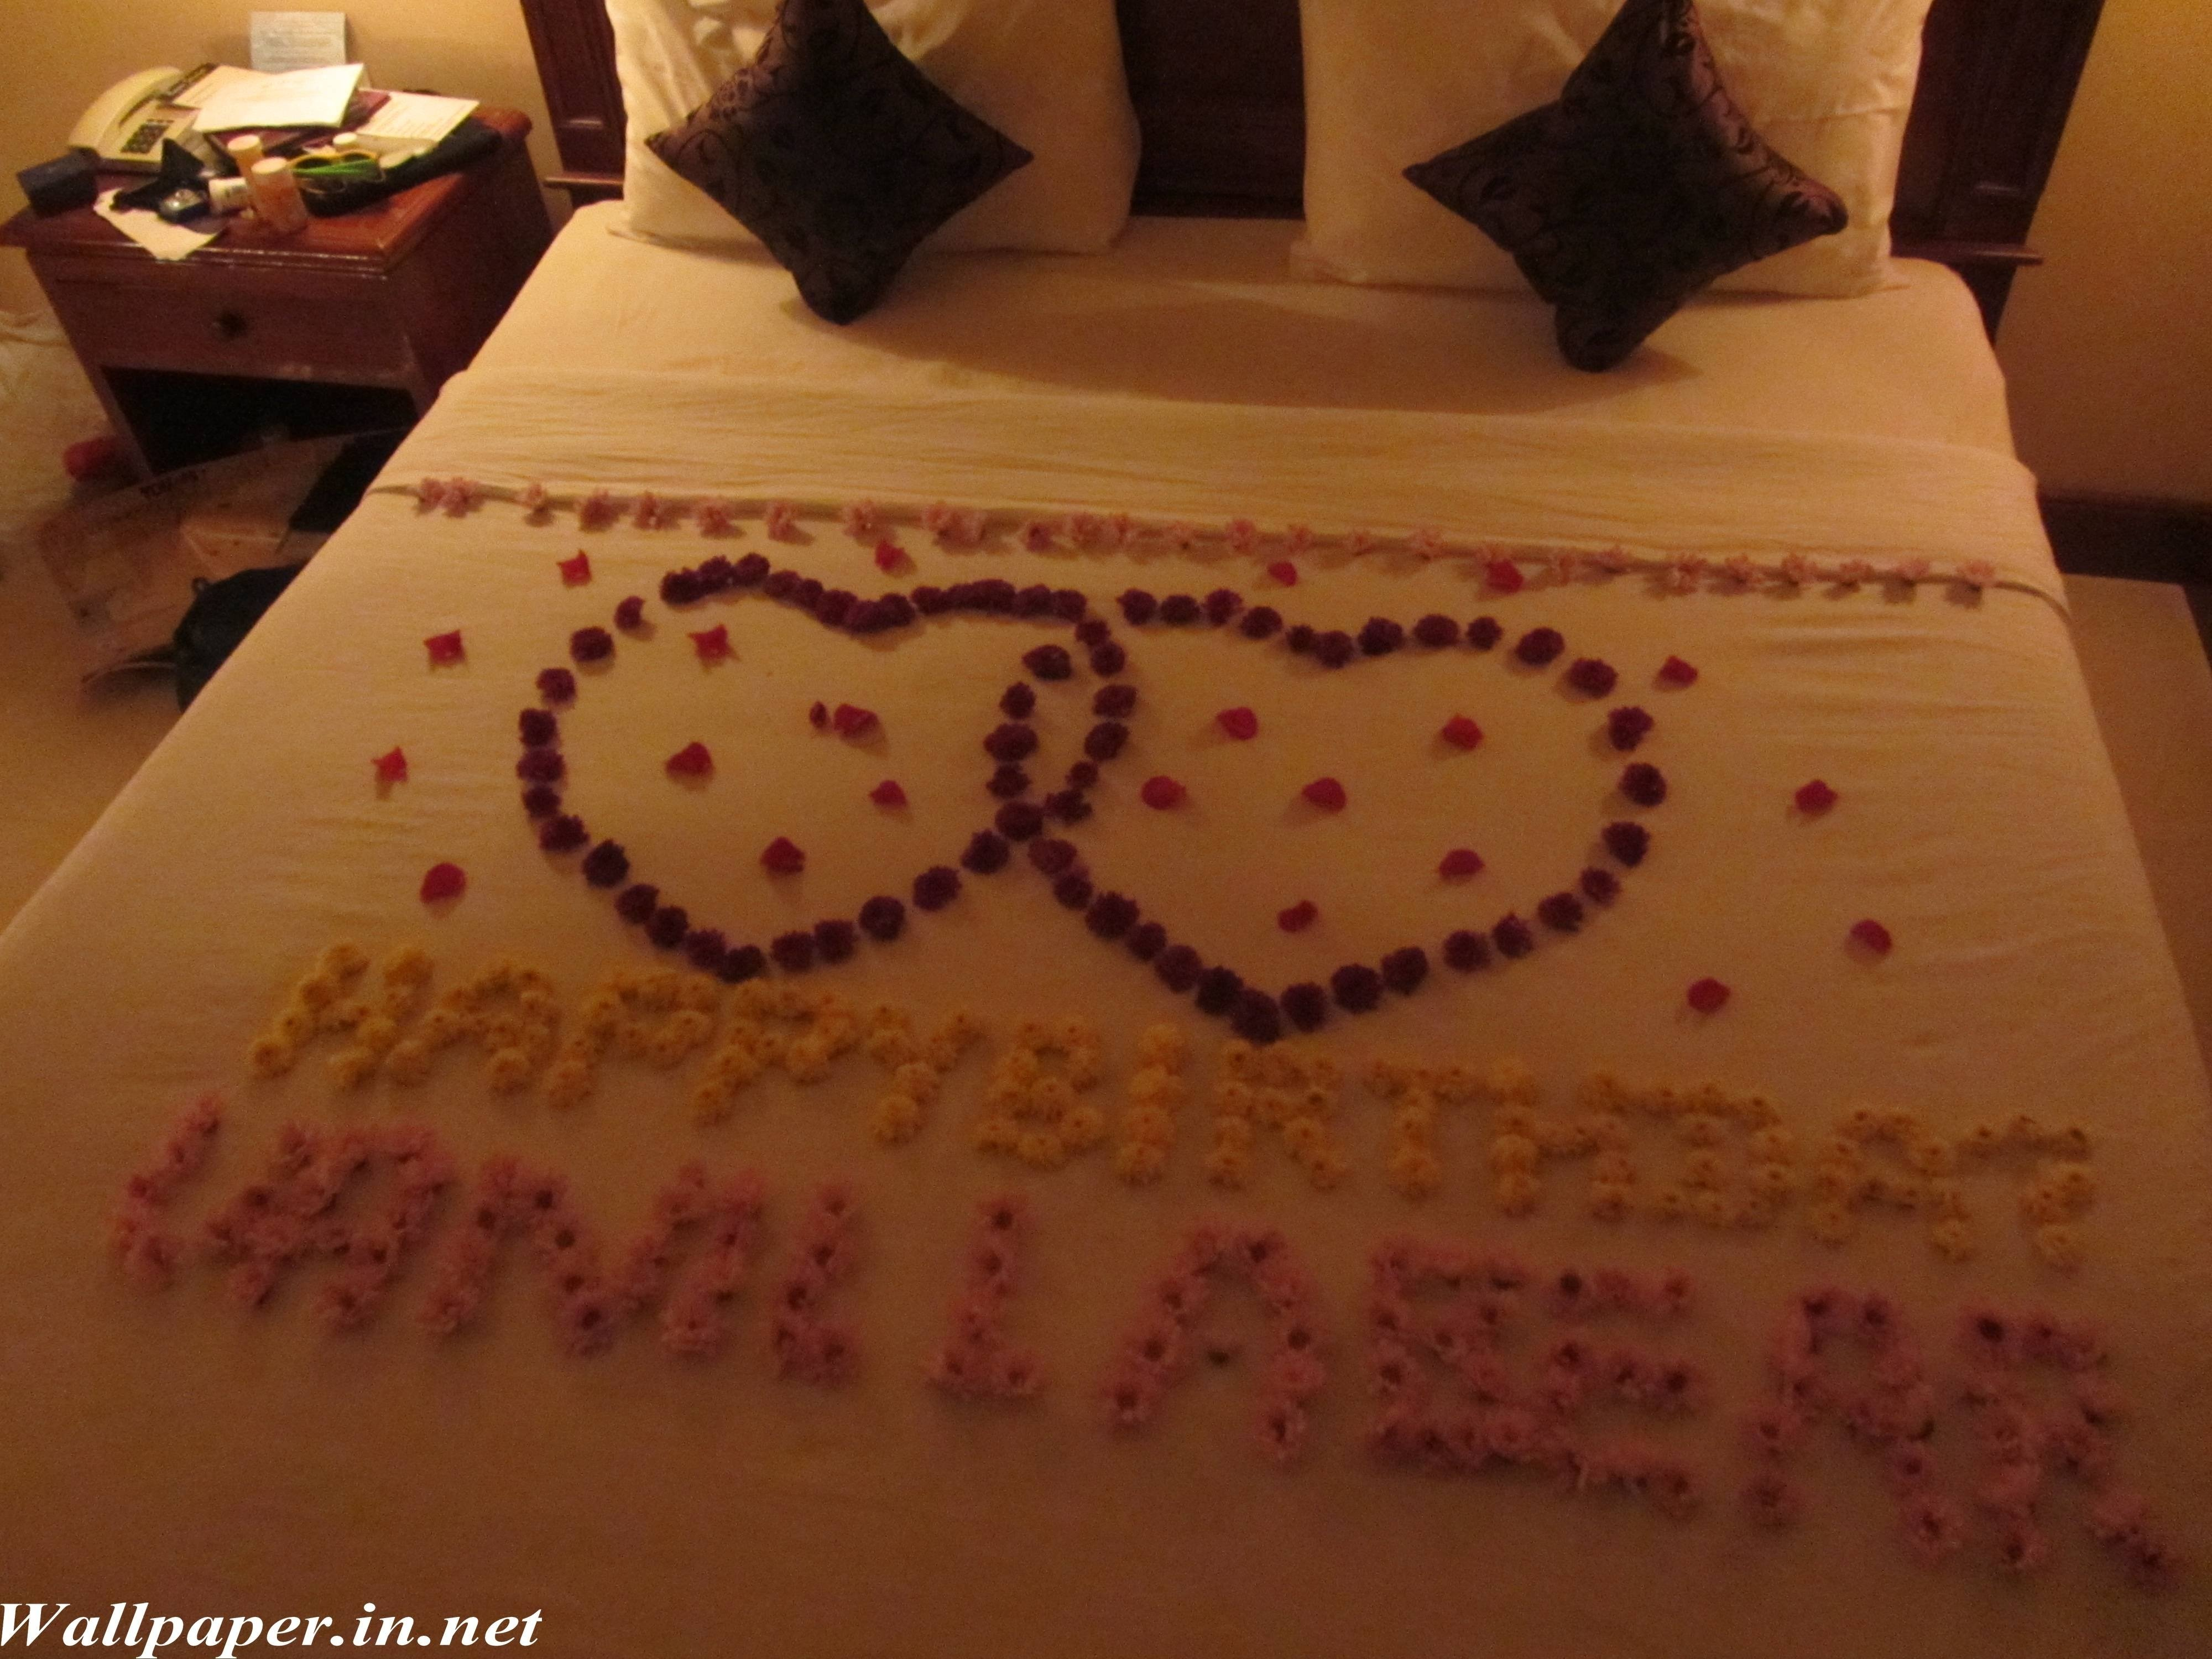 10 Beautiful Birthday Ideas For Your Wife birthday gift ideas for your boyfriend with a personal touch that 2020